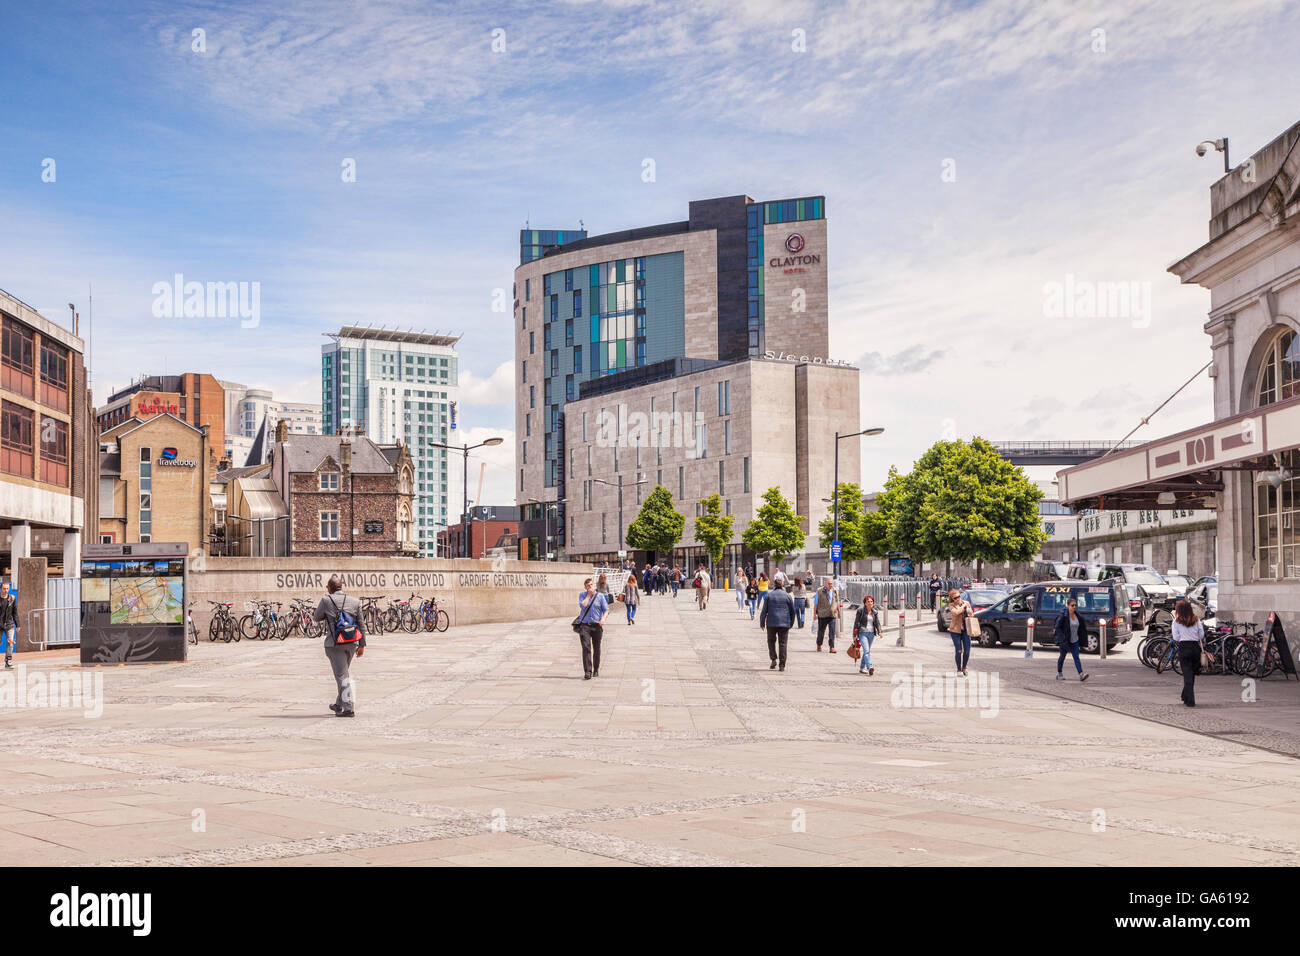 Cardiff, Wales: 27 June 2016 - Cardiff Central Square. - Stock Image